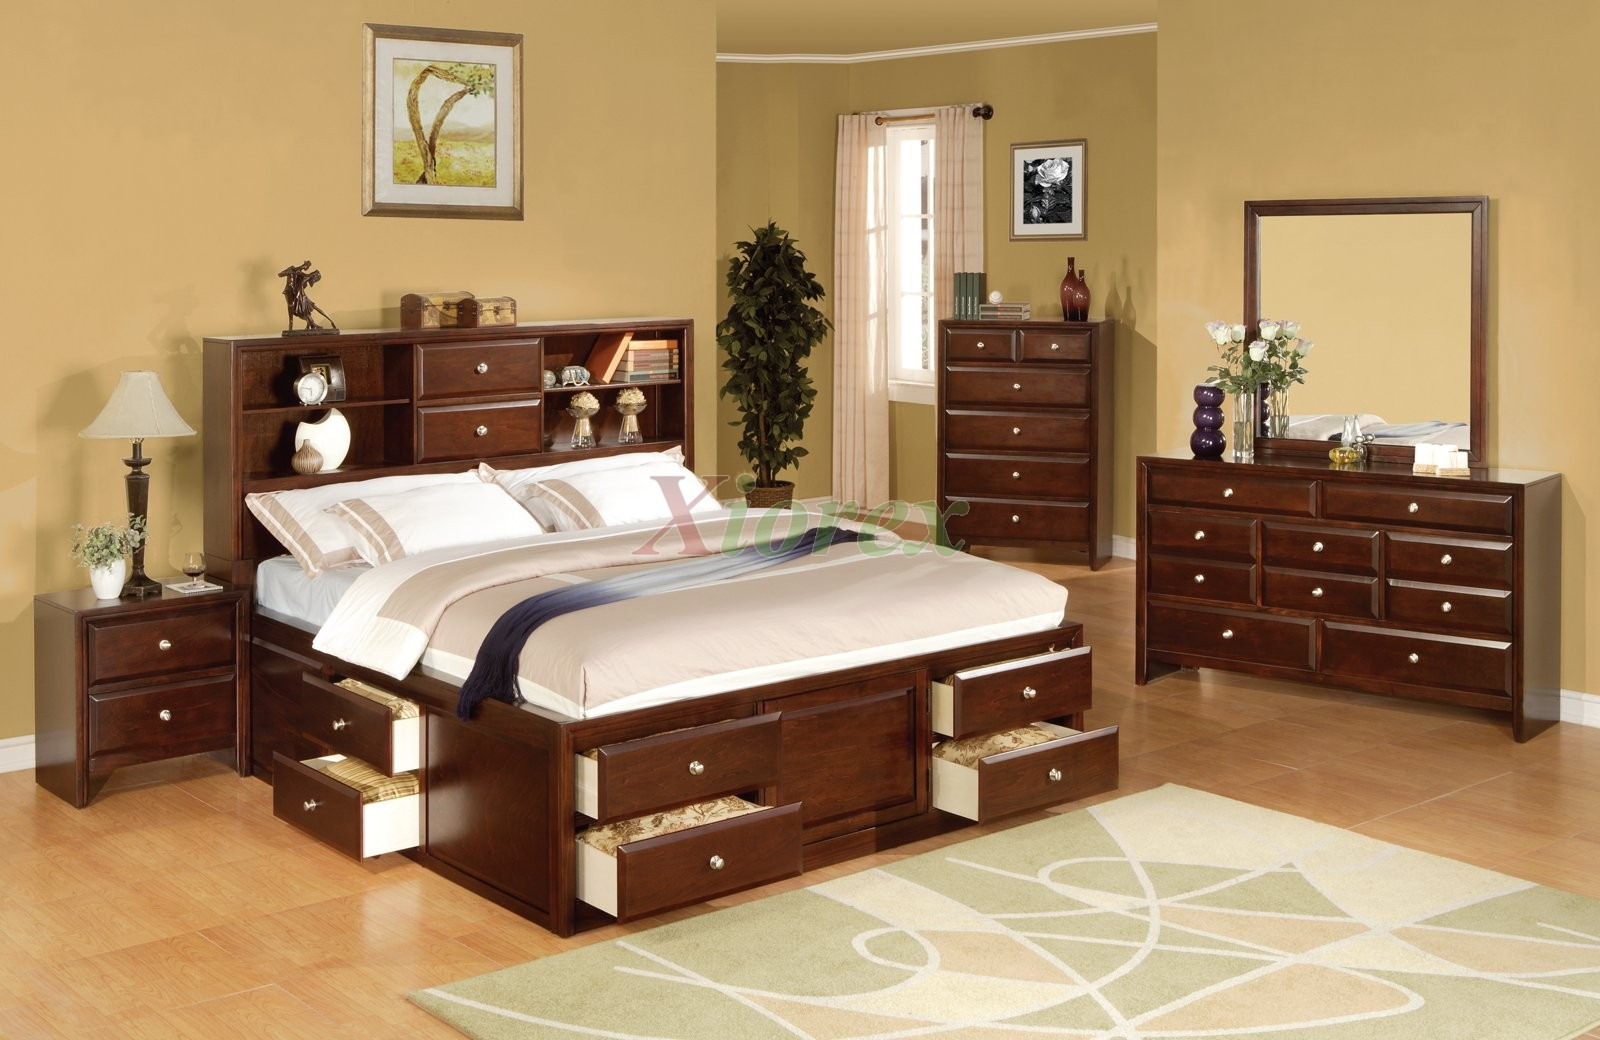 Bookcase and storage bedroom furniture set 137 xiorex for Bedroom bookshelves